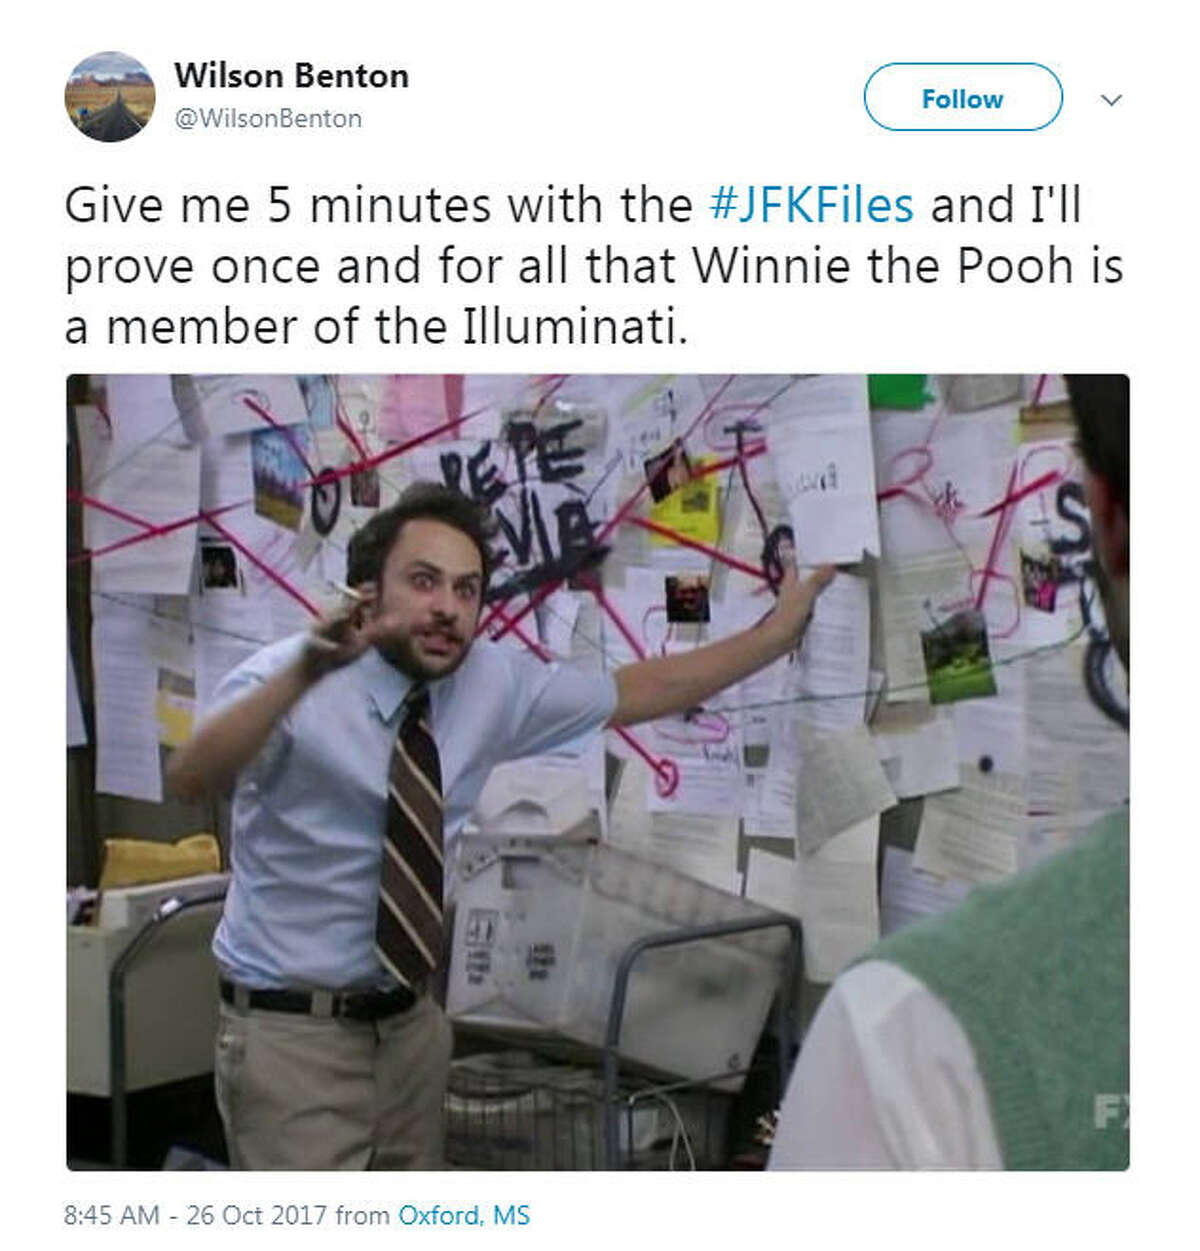 """""""Give me 5 minutes with the #JFKFiles and I'll prove once and for all that Winnie the Pooh is a member of the Illuminati."""" Source: Twitter"""